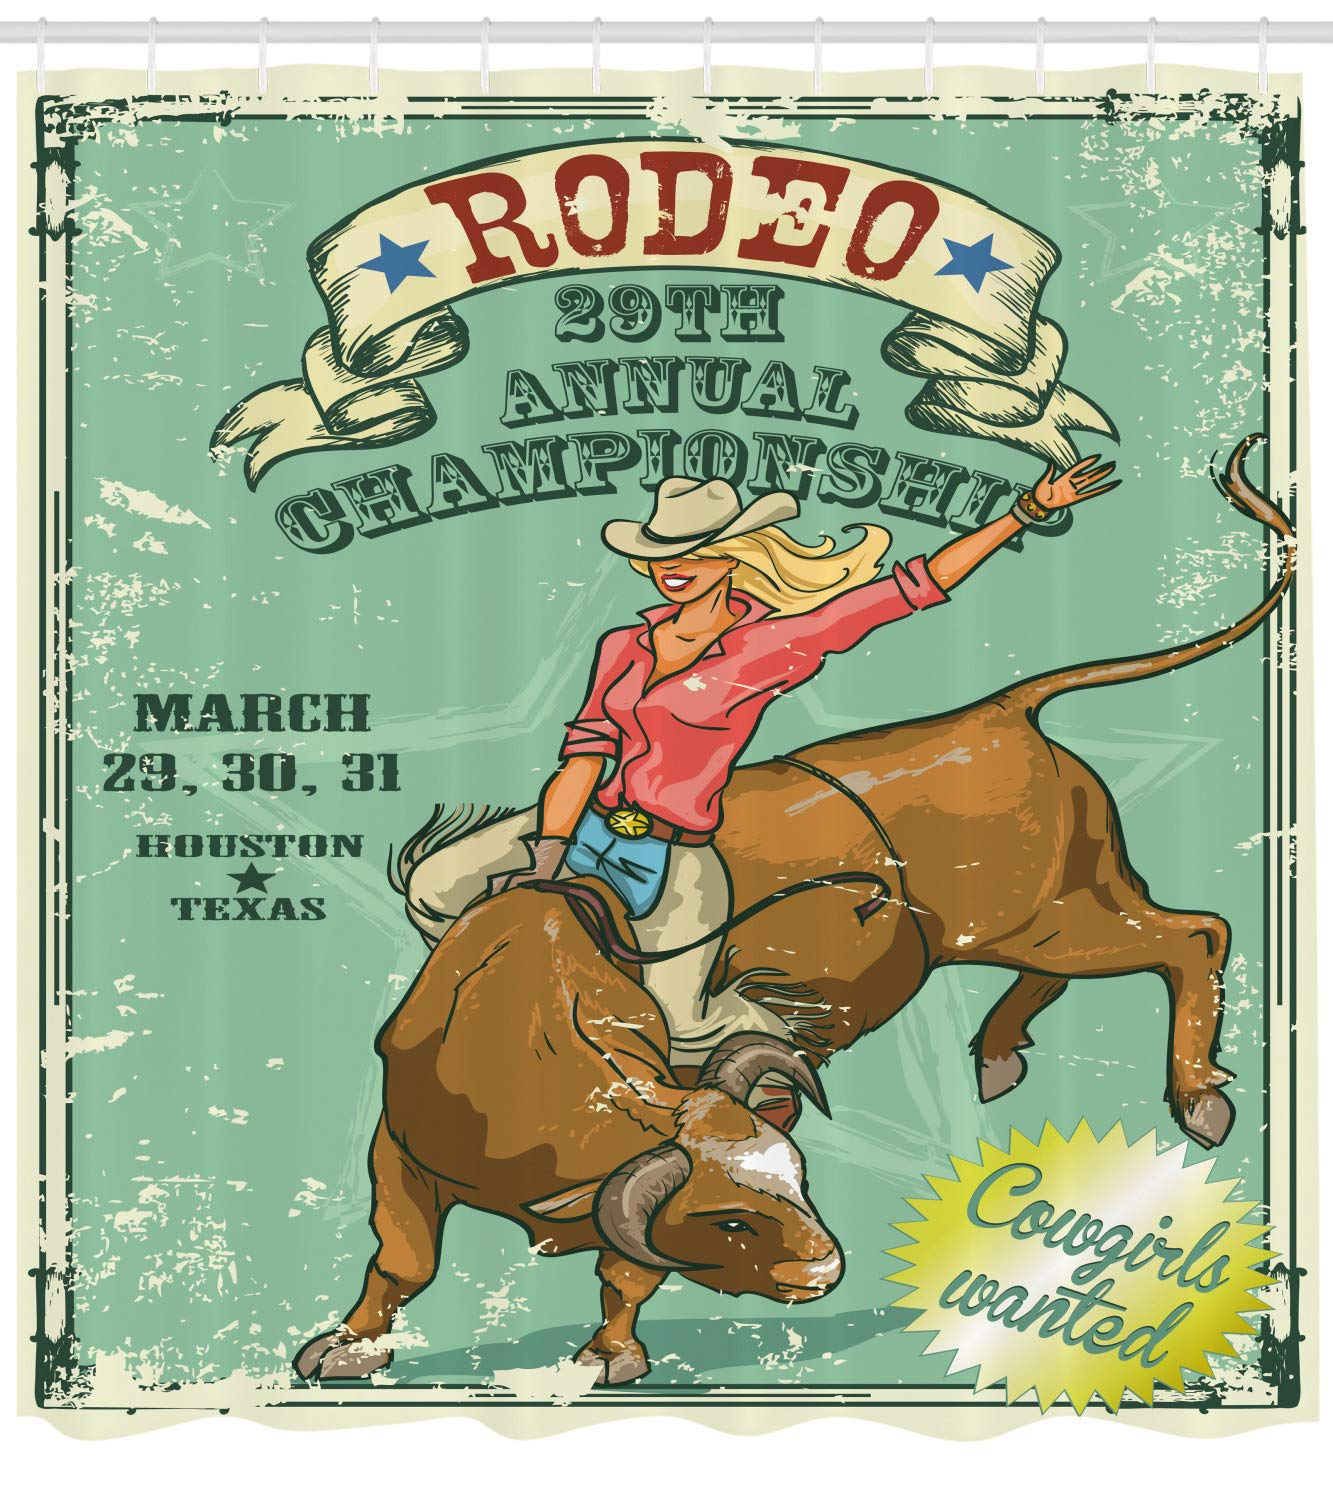 Ambesonne Retro Shower Curtain, Rodeo Cowgirl on The Bull Annual Championship Vintage Poster Pattern Grunge Design, Fabric Bathroom Decor Set with Hooks, ...